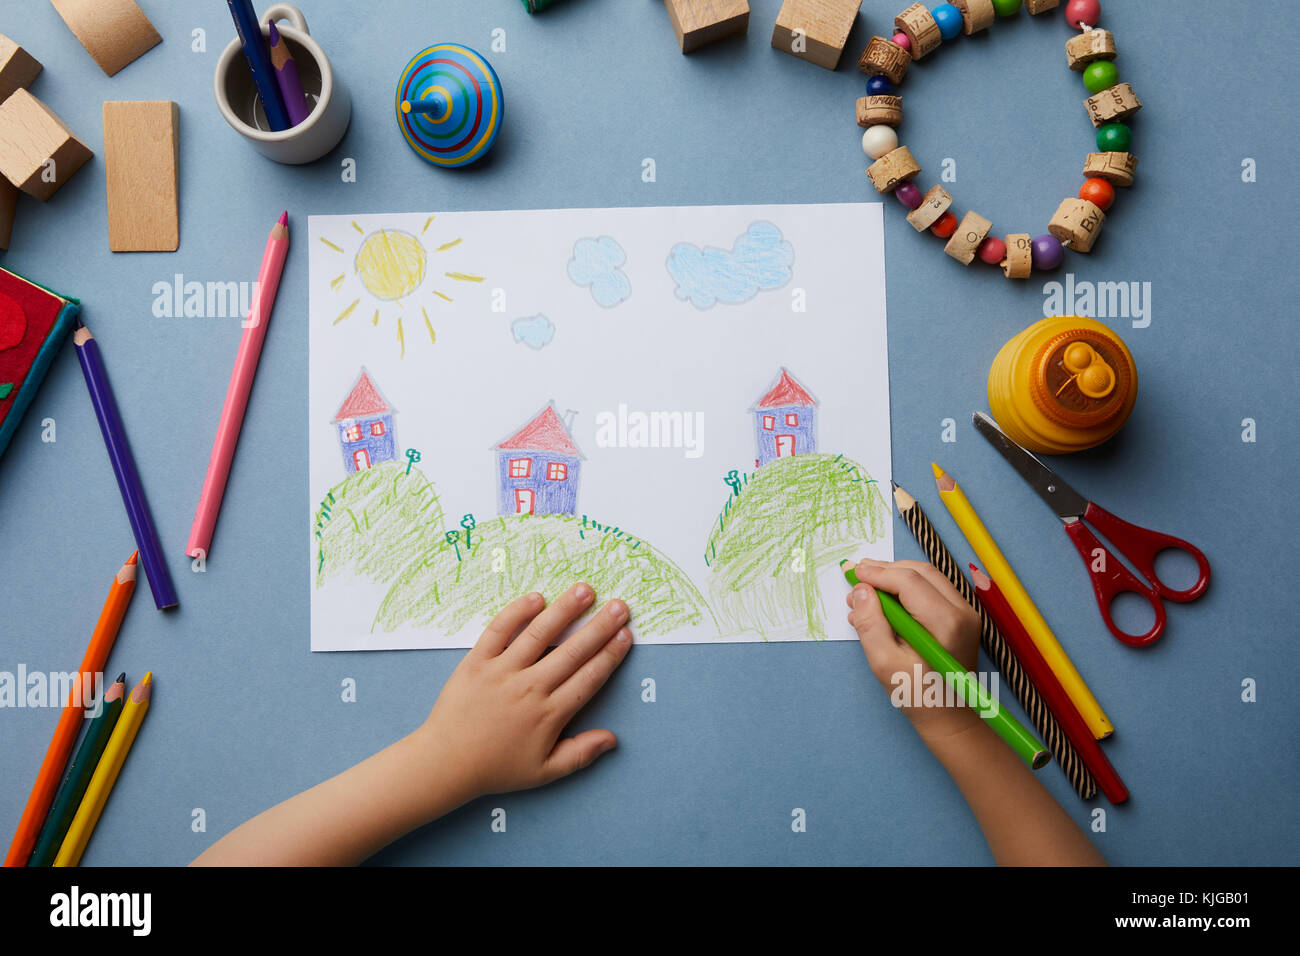 Child drawing landscape with houses - Stock Image